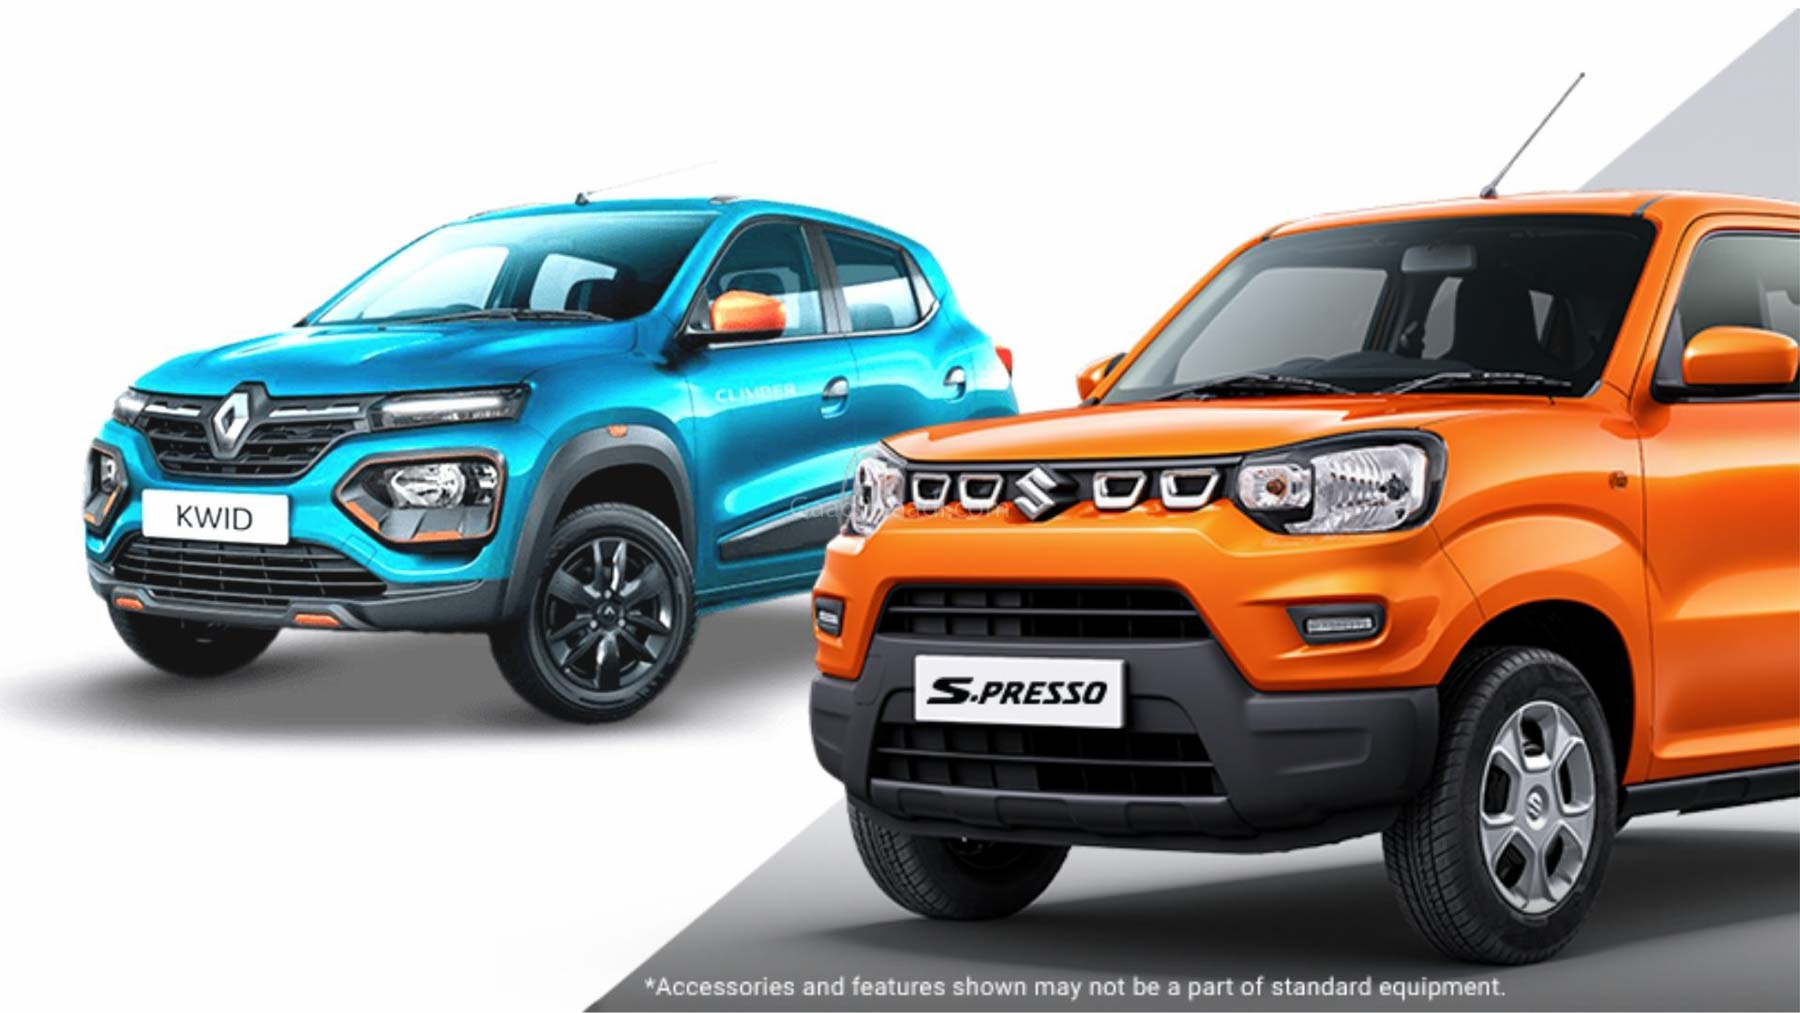 Top 5 BS6 Cars Prices Under Rs 4 Lakh In The Indian Market